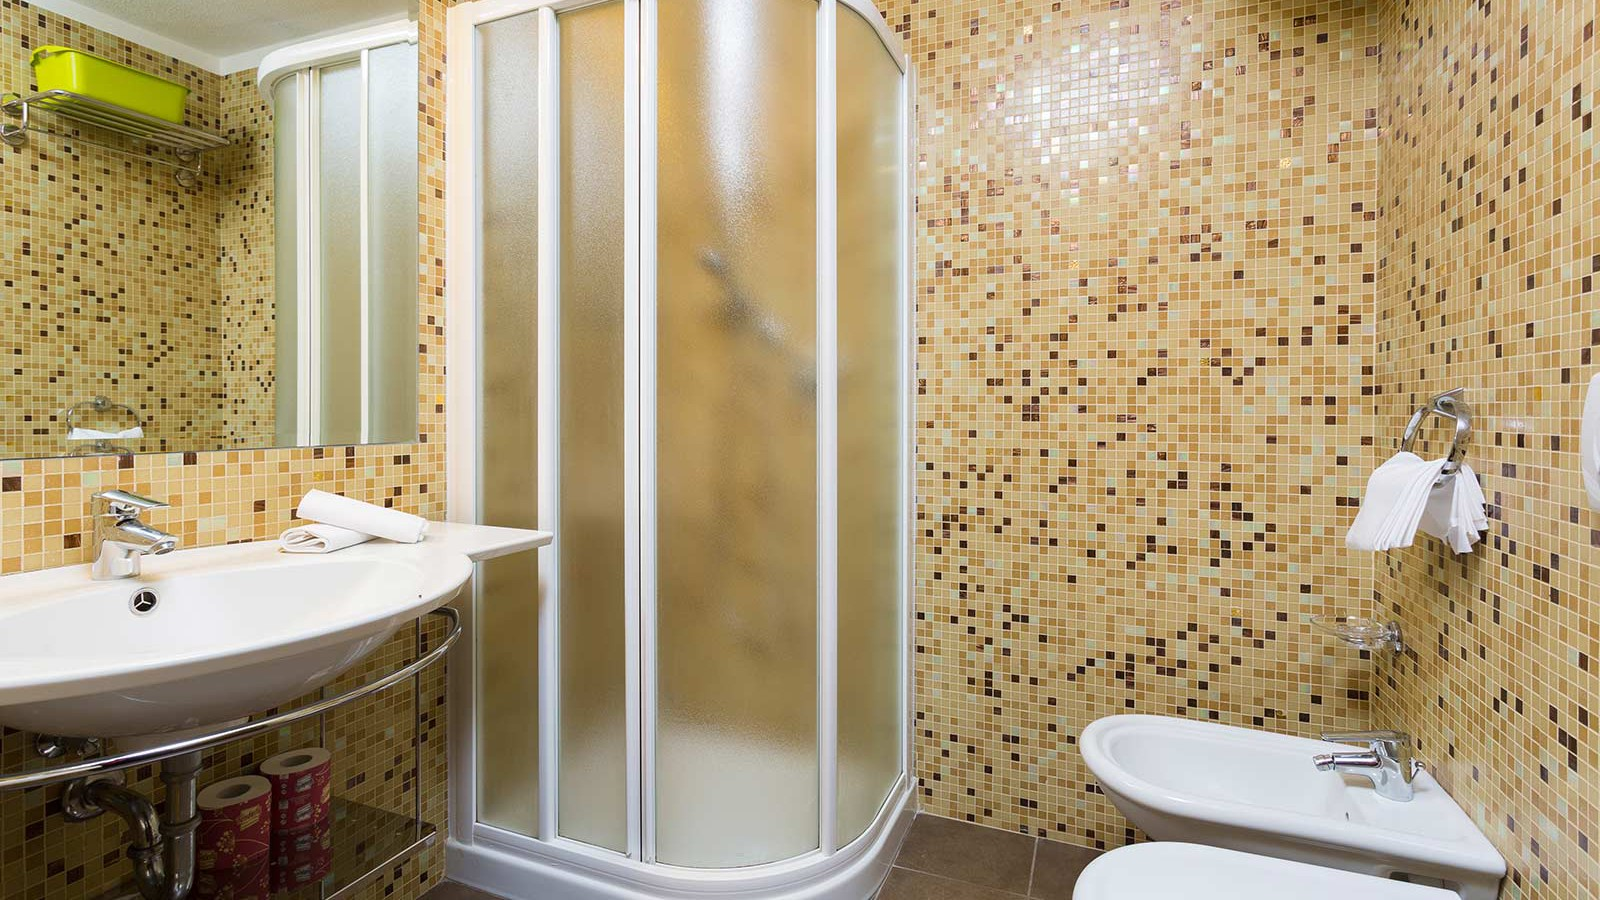 Residence Ambiez, Madonna di Campiglio - Apartment - 4-10 - Bathroom